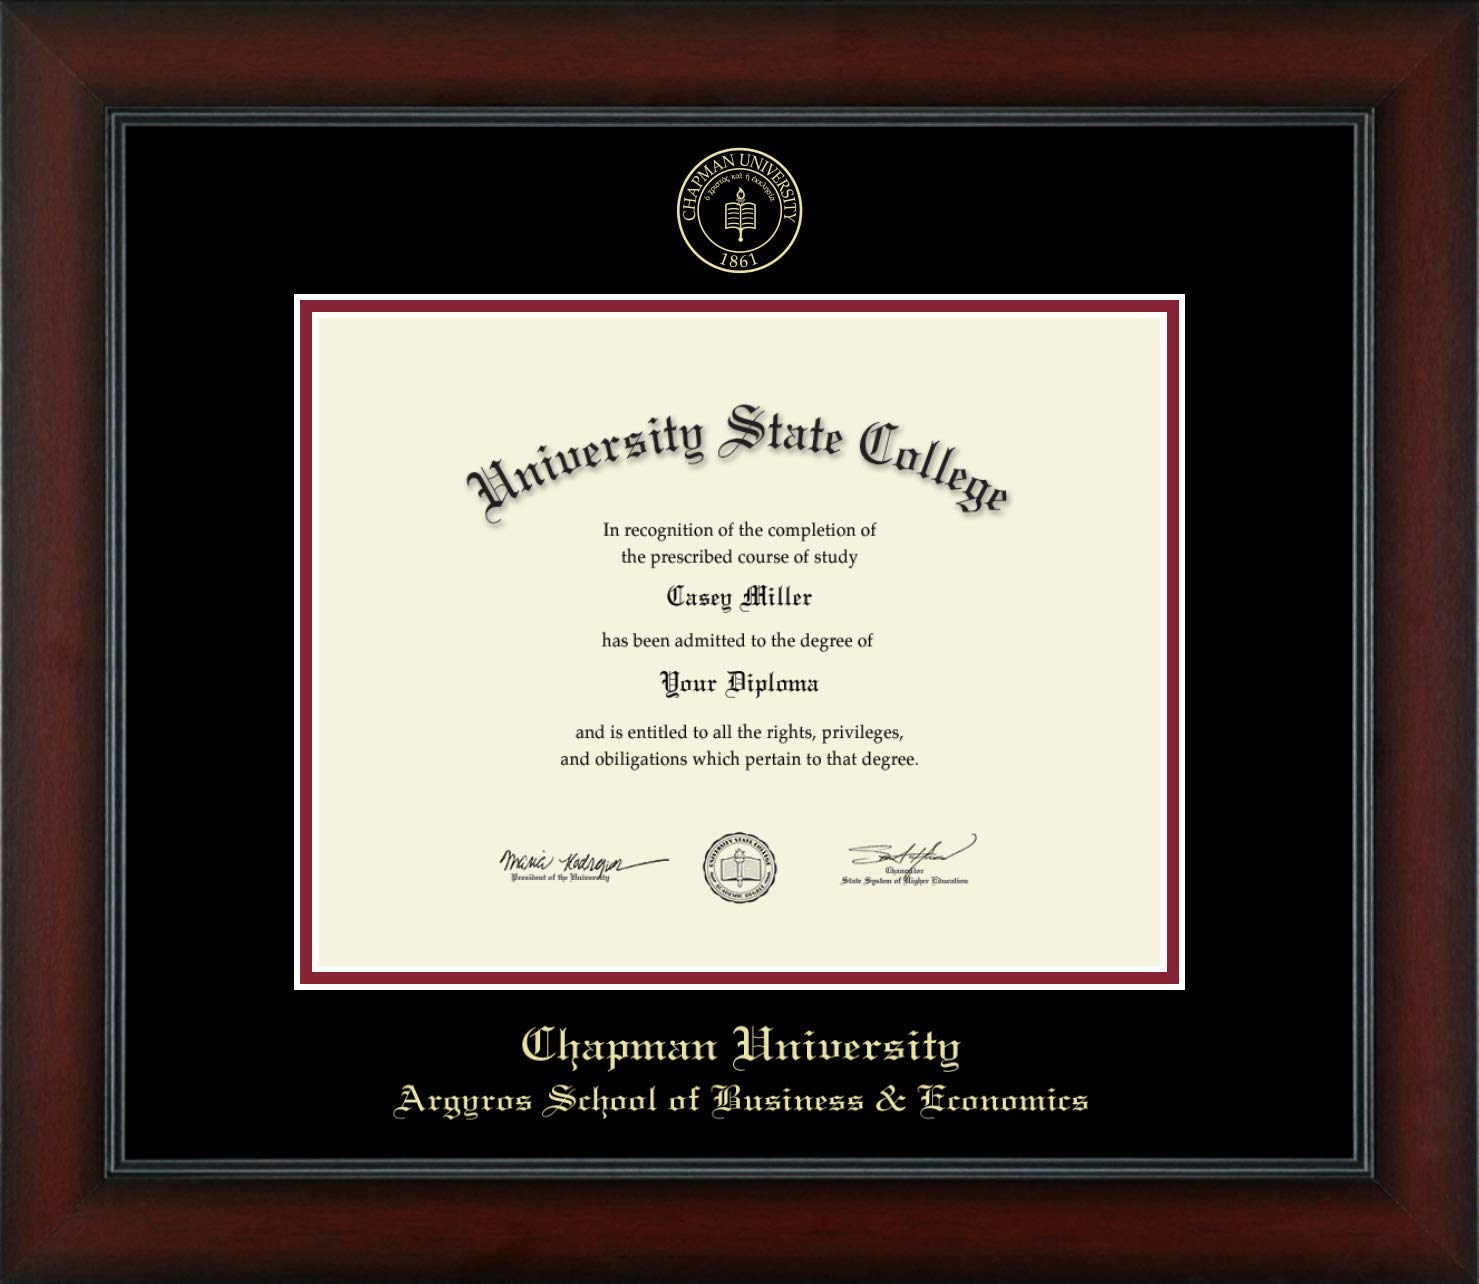 Chapman University Argyros School of Business & Economics - Officially Licensed - Gold Embossed Diploma Frame - Diploma Size 11'' x 8.5''